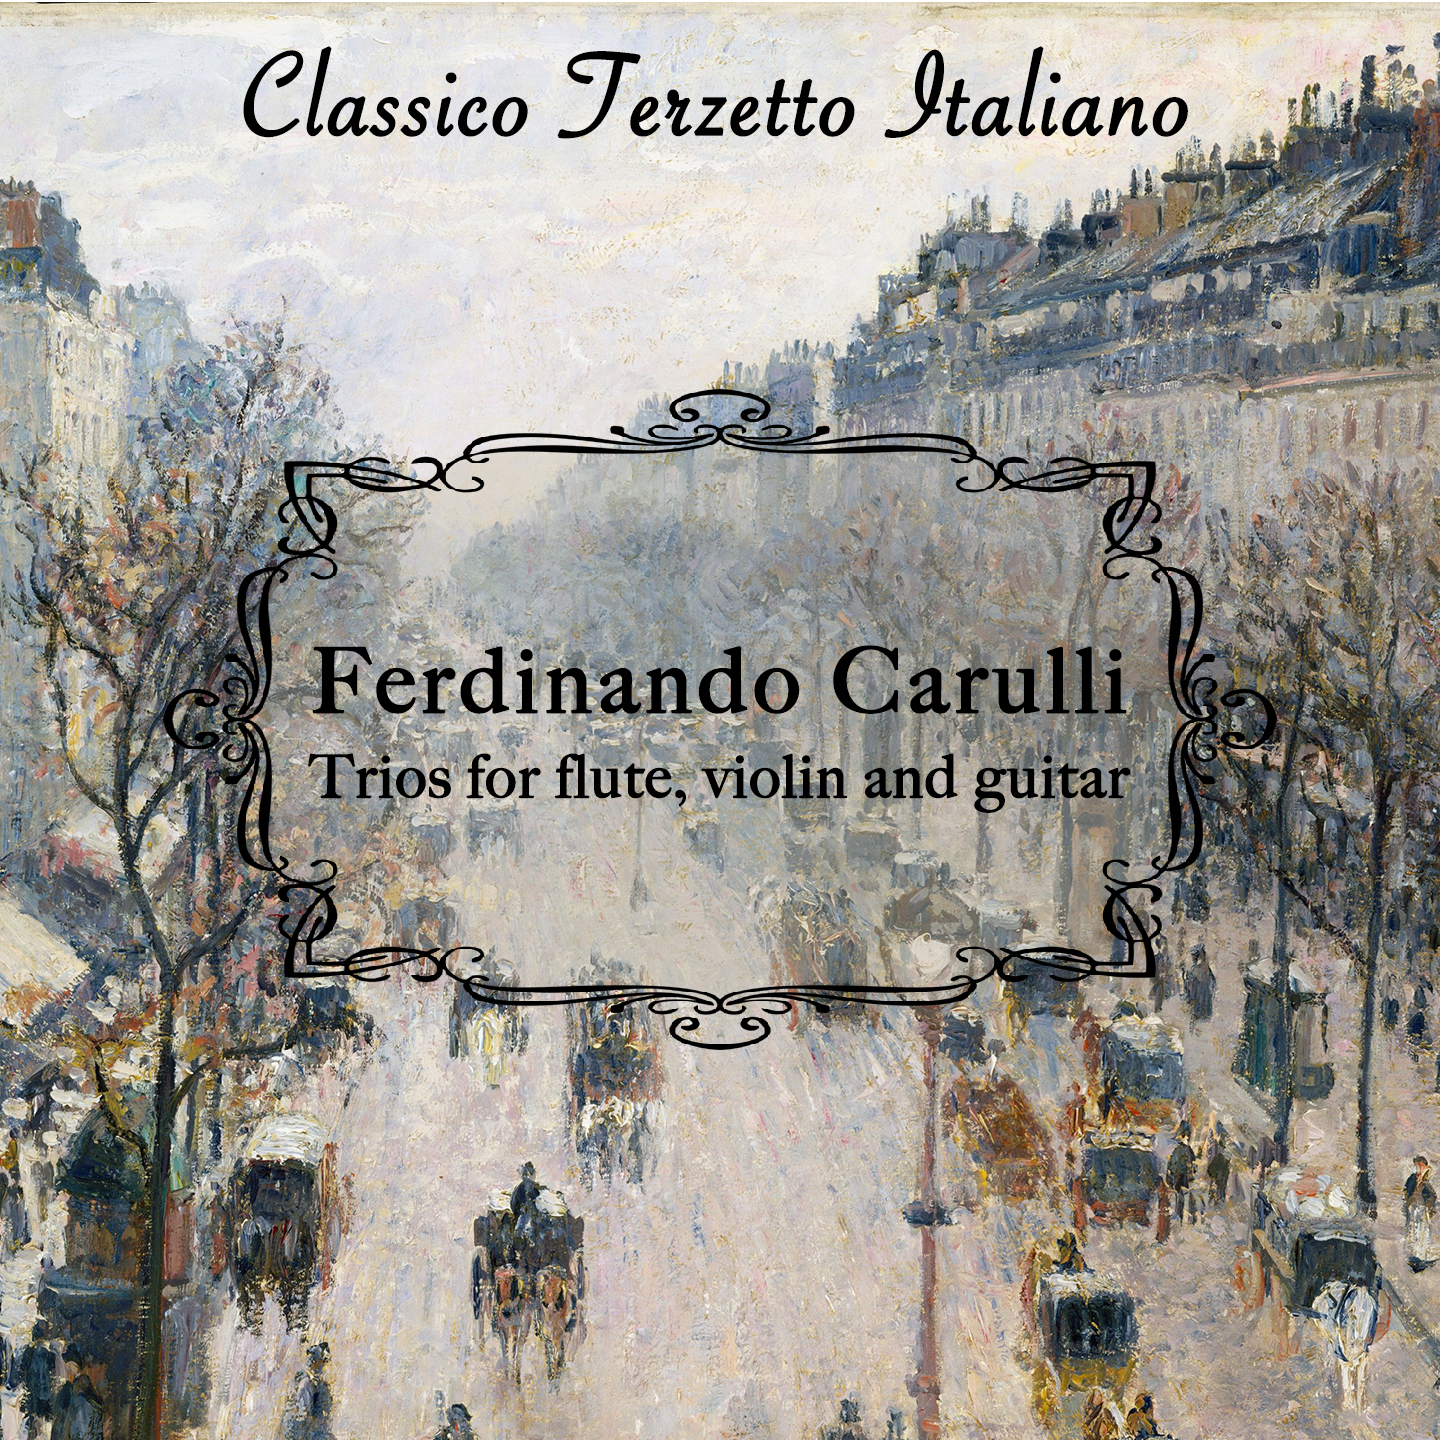 Ferdinando Carulli: Trios for Flute, Violin and Guitar